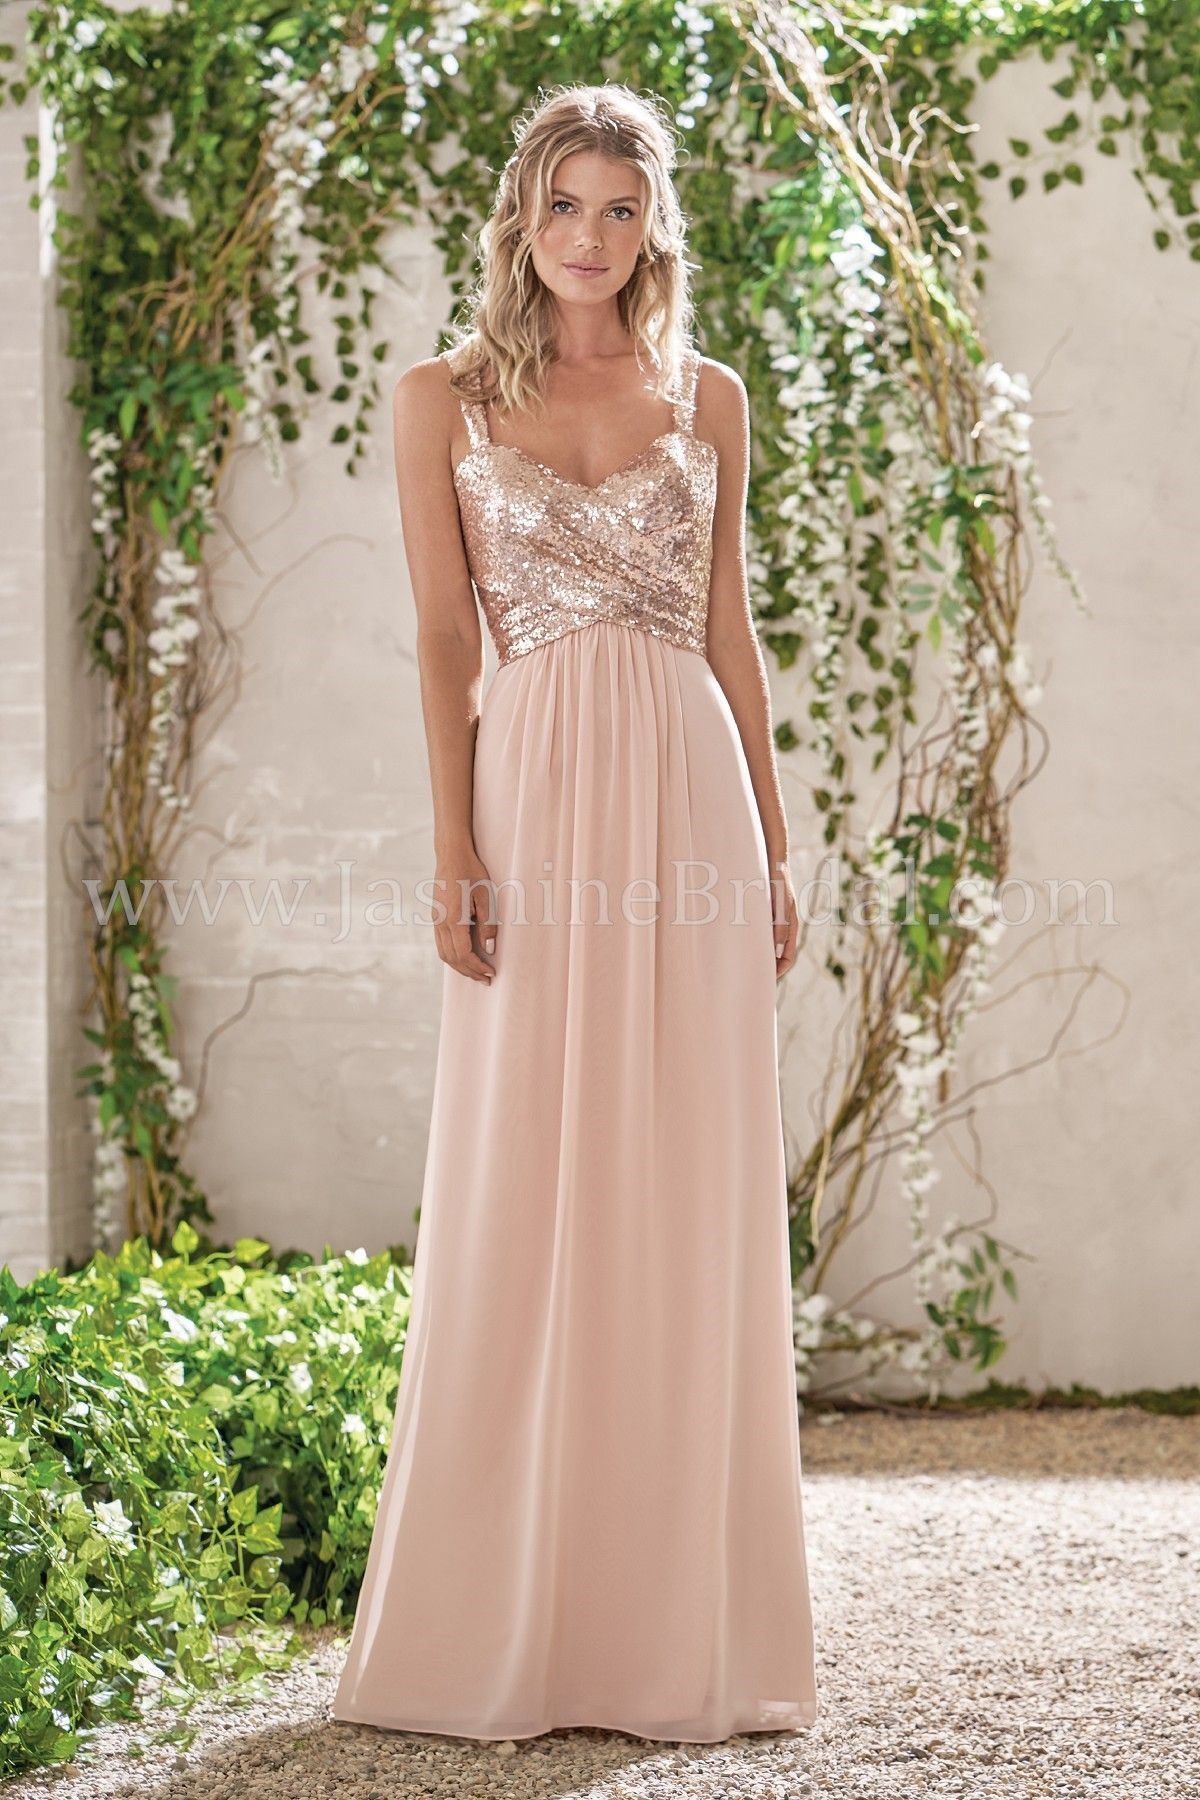 Jasmine Bridal B2 Style B in Sequin II Poly